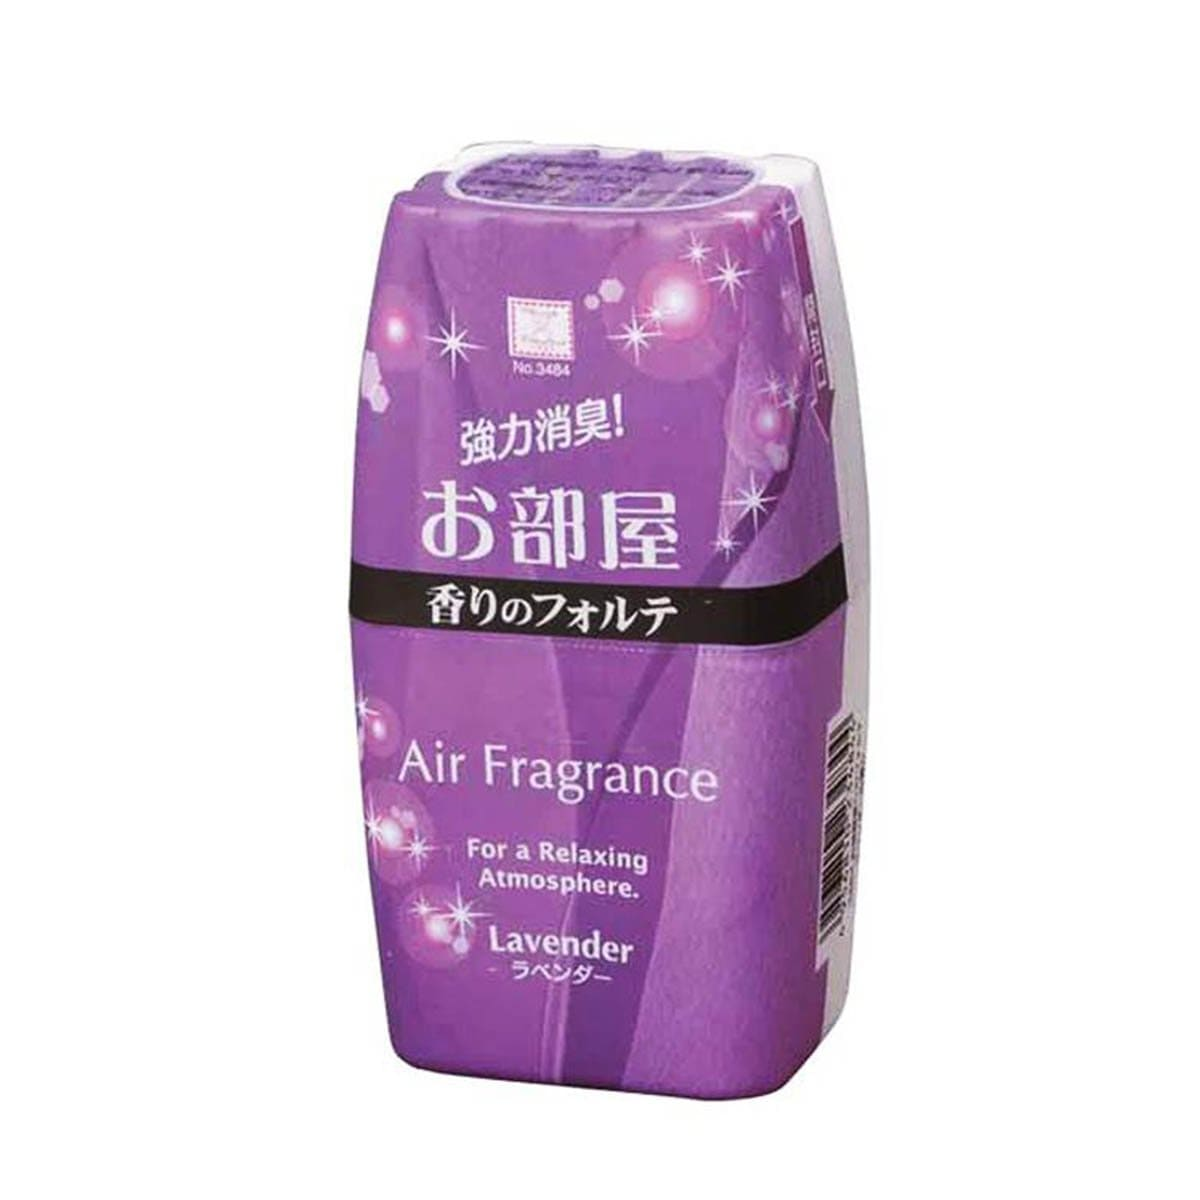 Japanese Deodorant For Room Scented Lavender